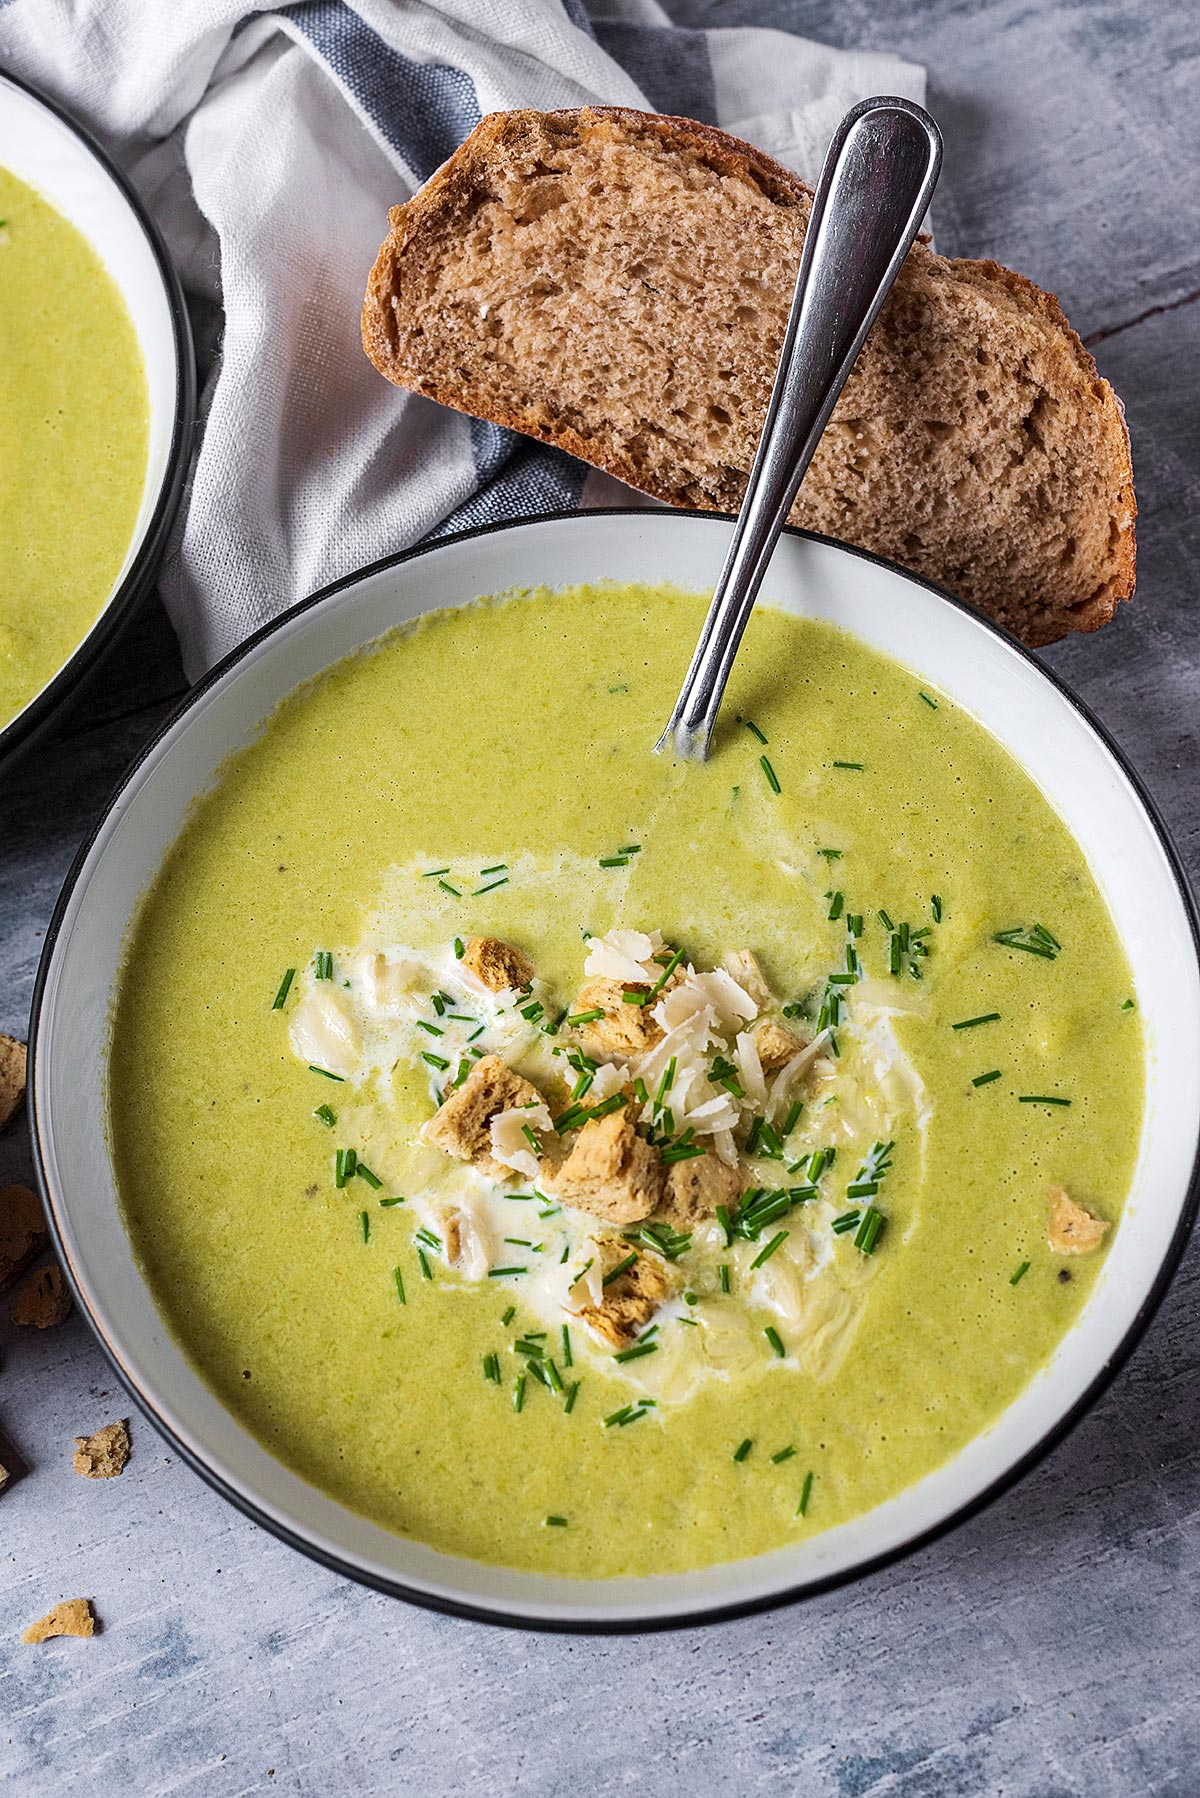 Asparagus soup in a bowl with a spoon